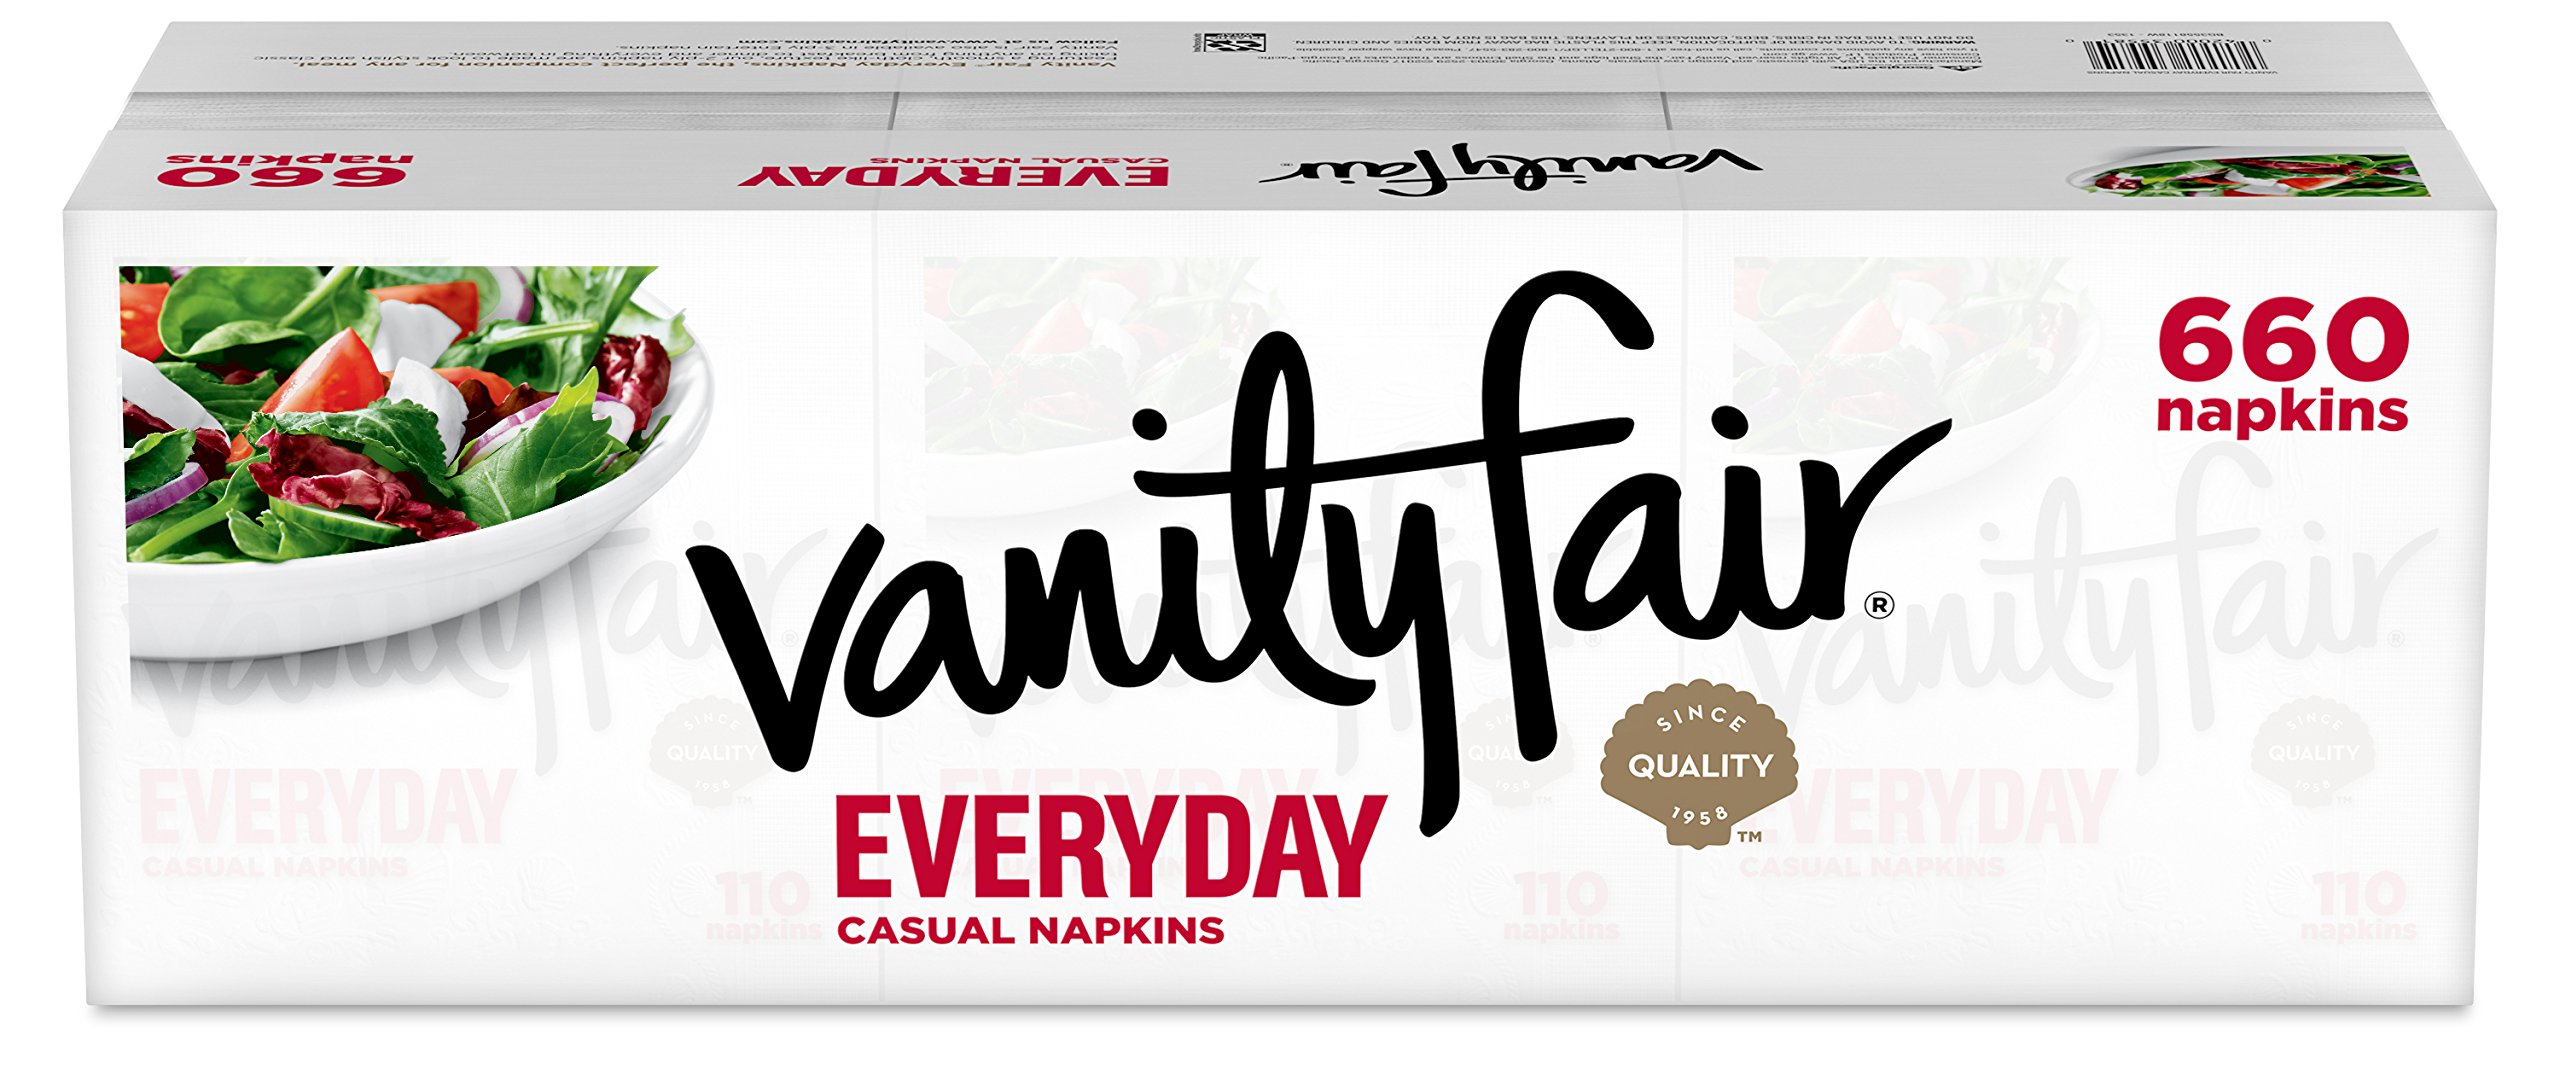 Vanity Fair Everyday Napkins, 660 Count, White Paper Napkins by Vanity Fair